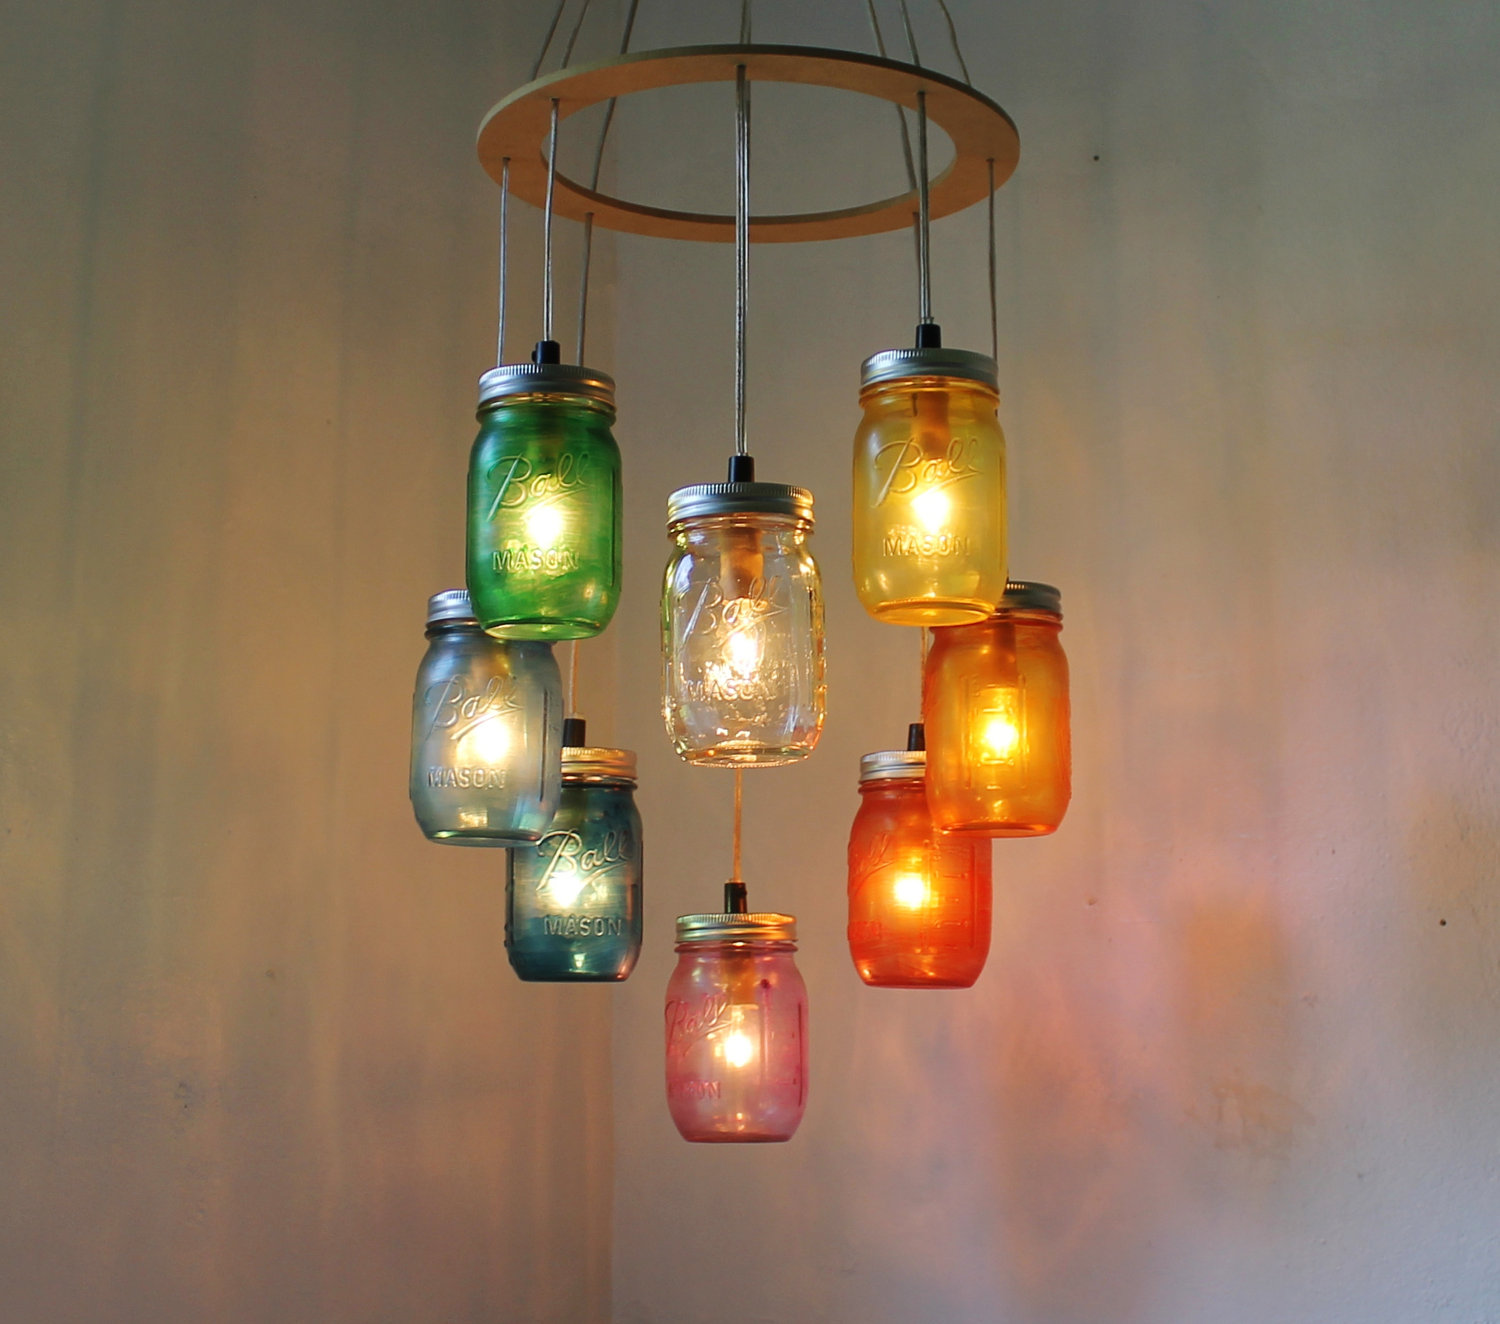 How To Make Ceiling Light Theteenline Org